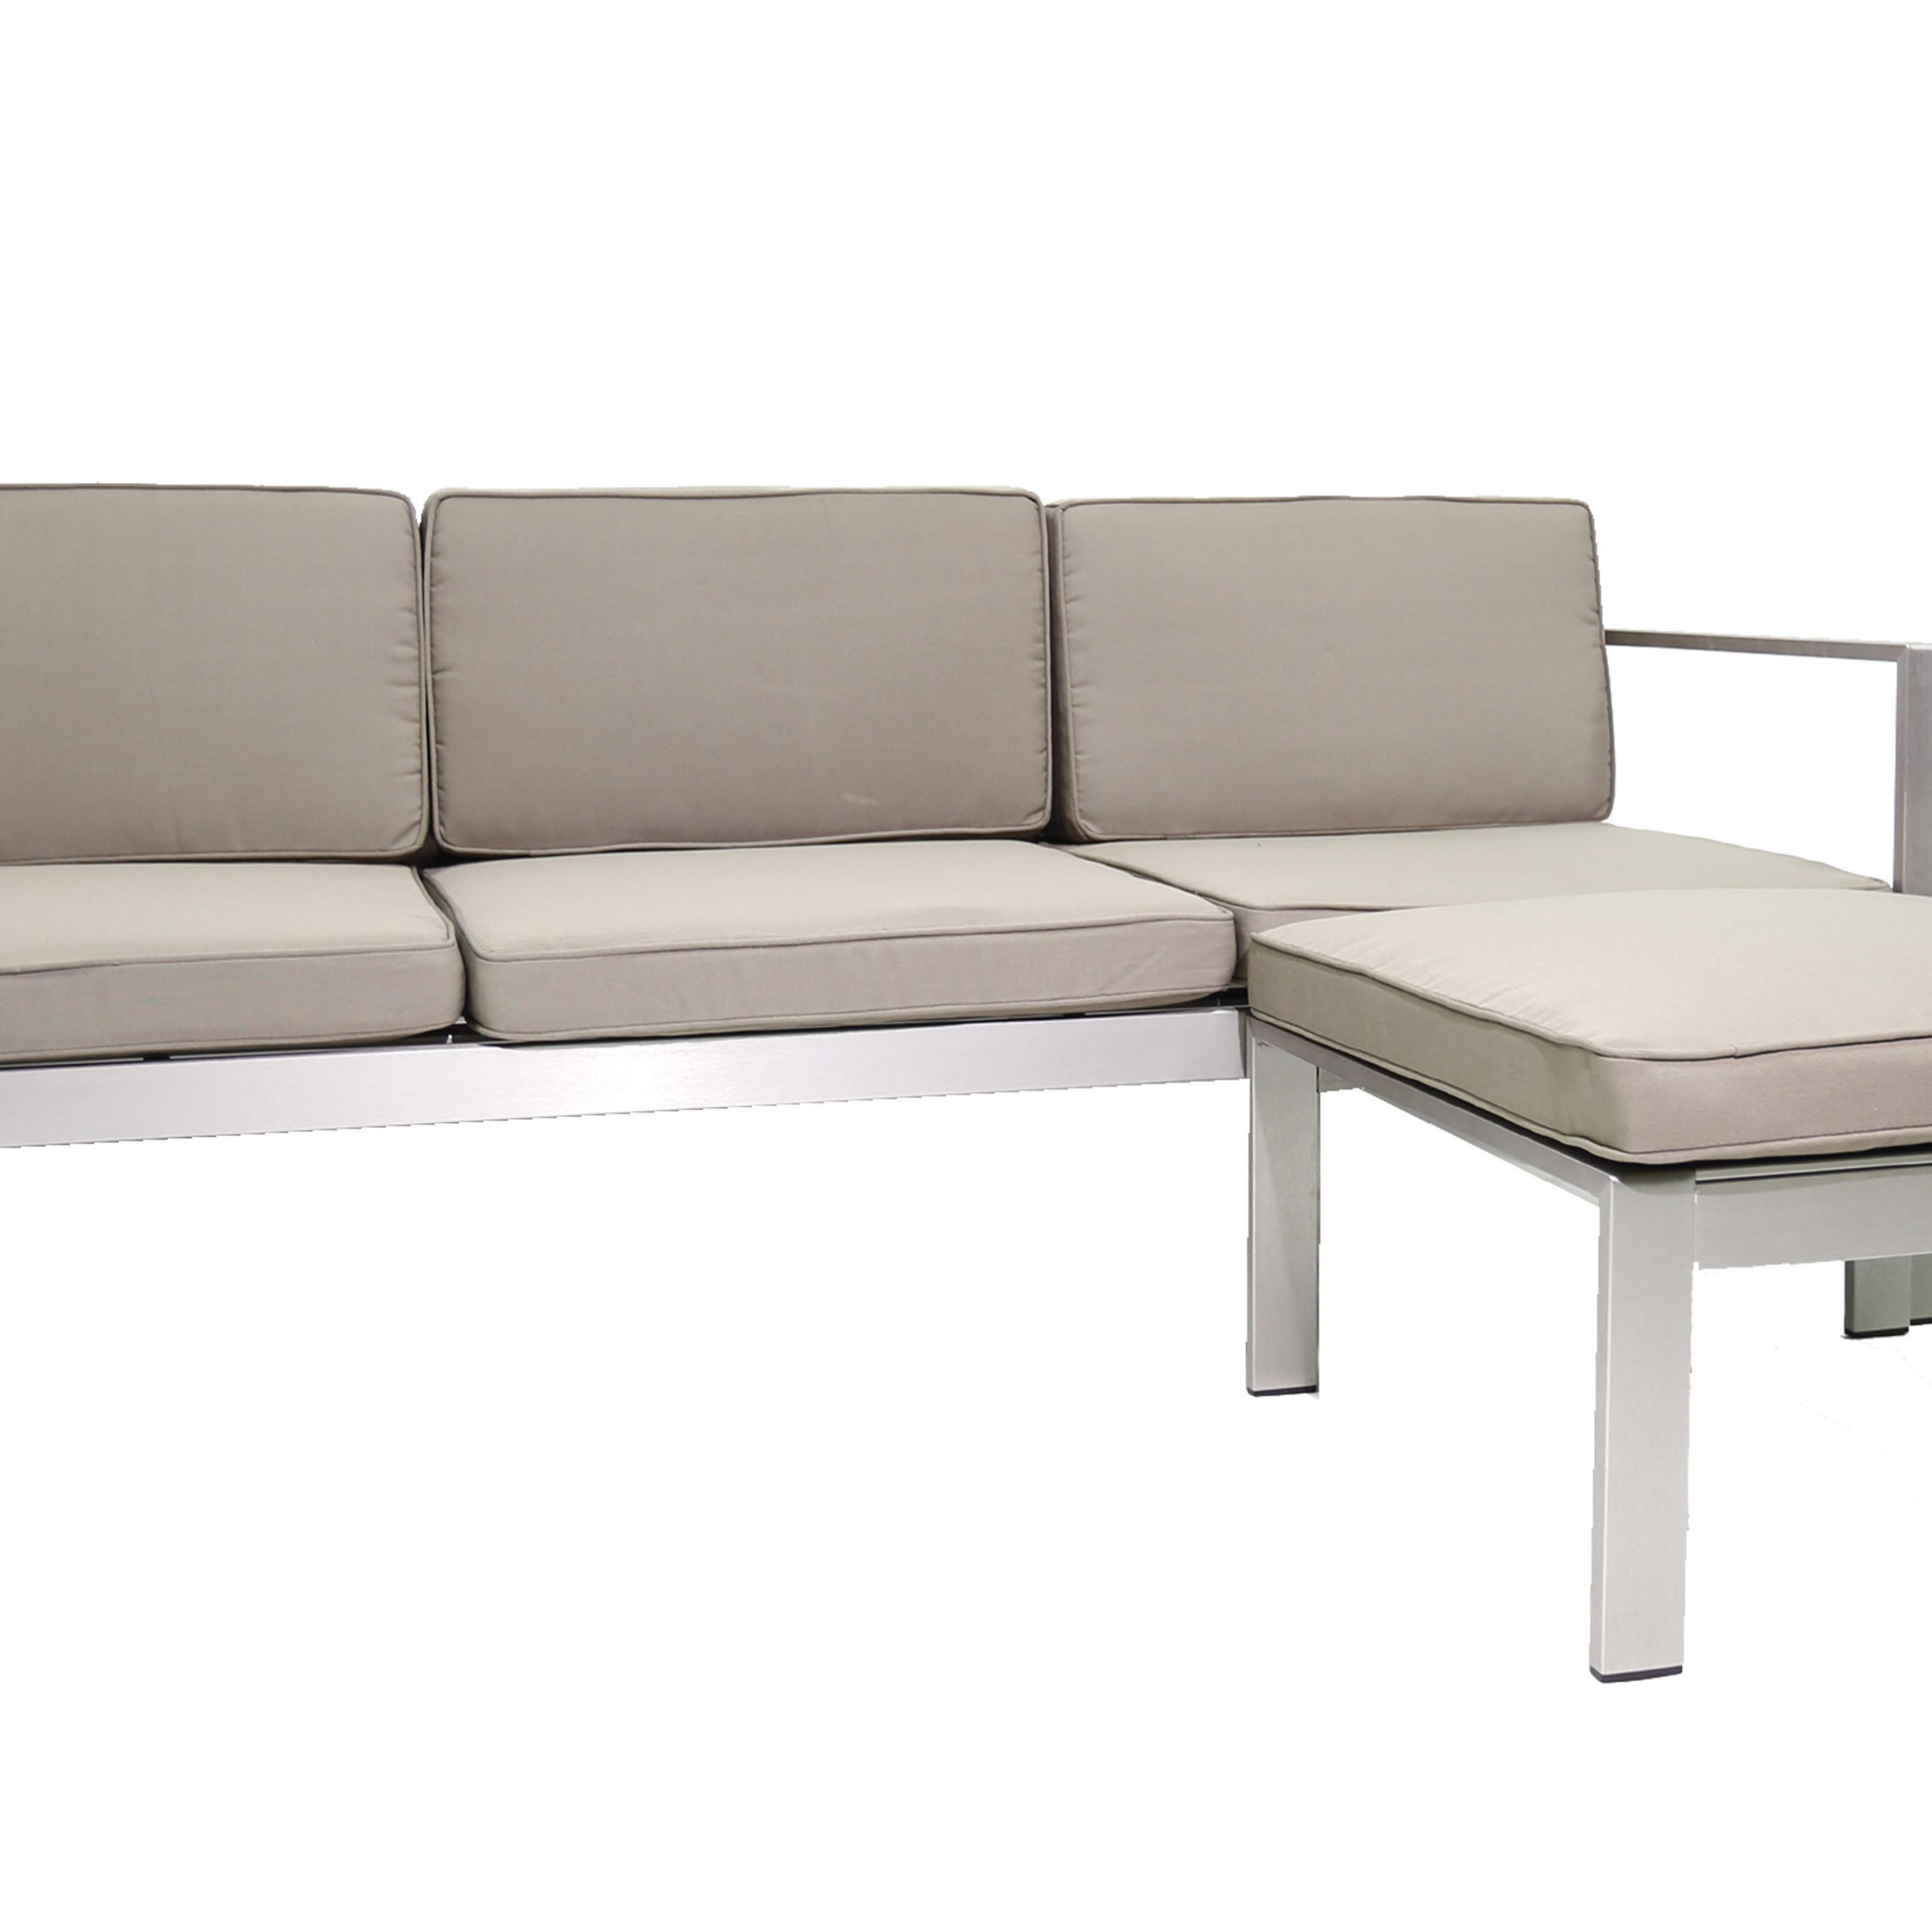 2019 Karen Patio Sectional With Cushions Pertaining To O'kean Teak Patio Sofas With Cushions (View 24 of 25)